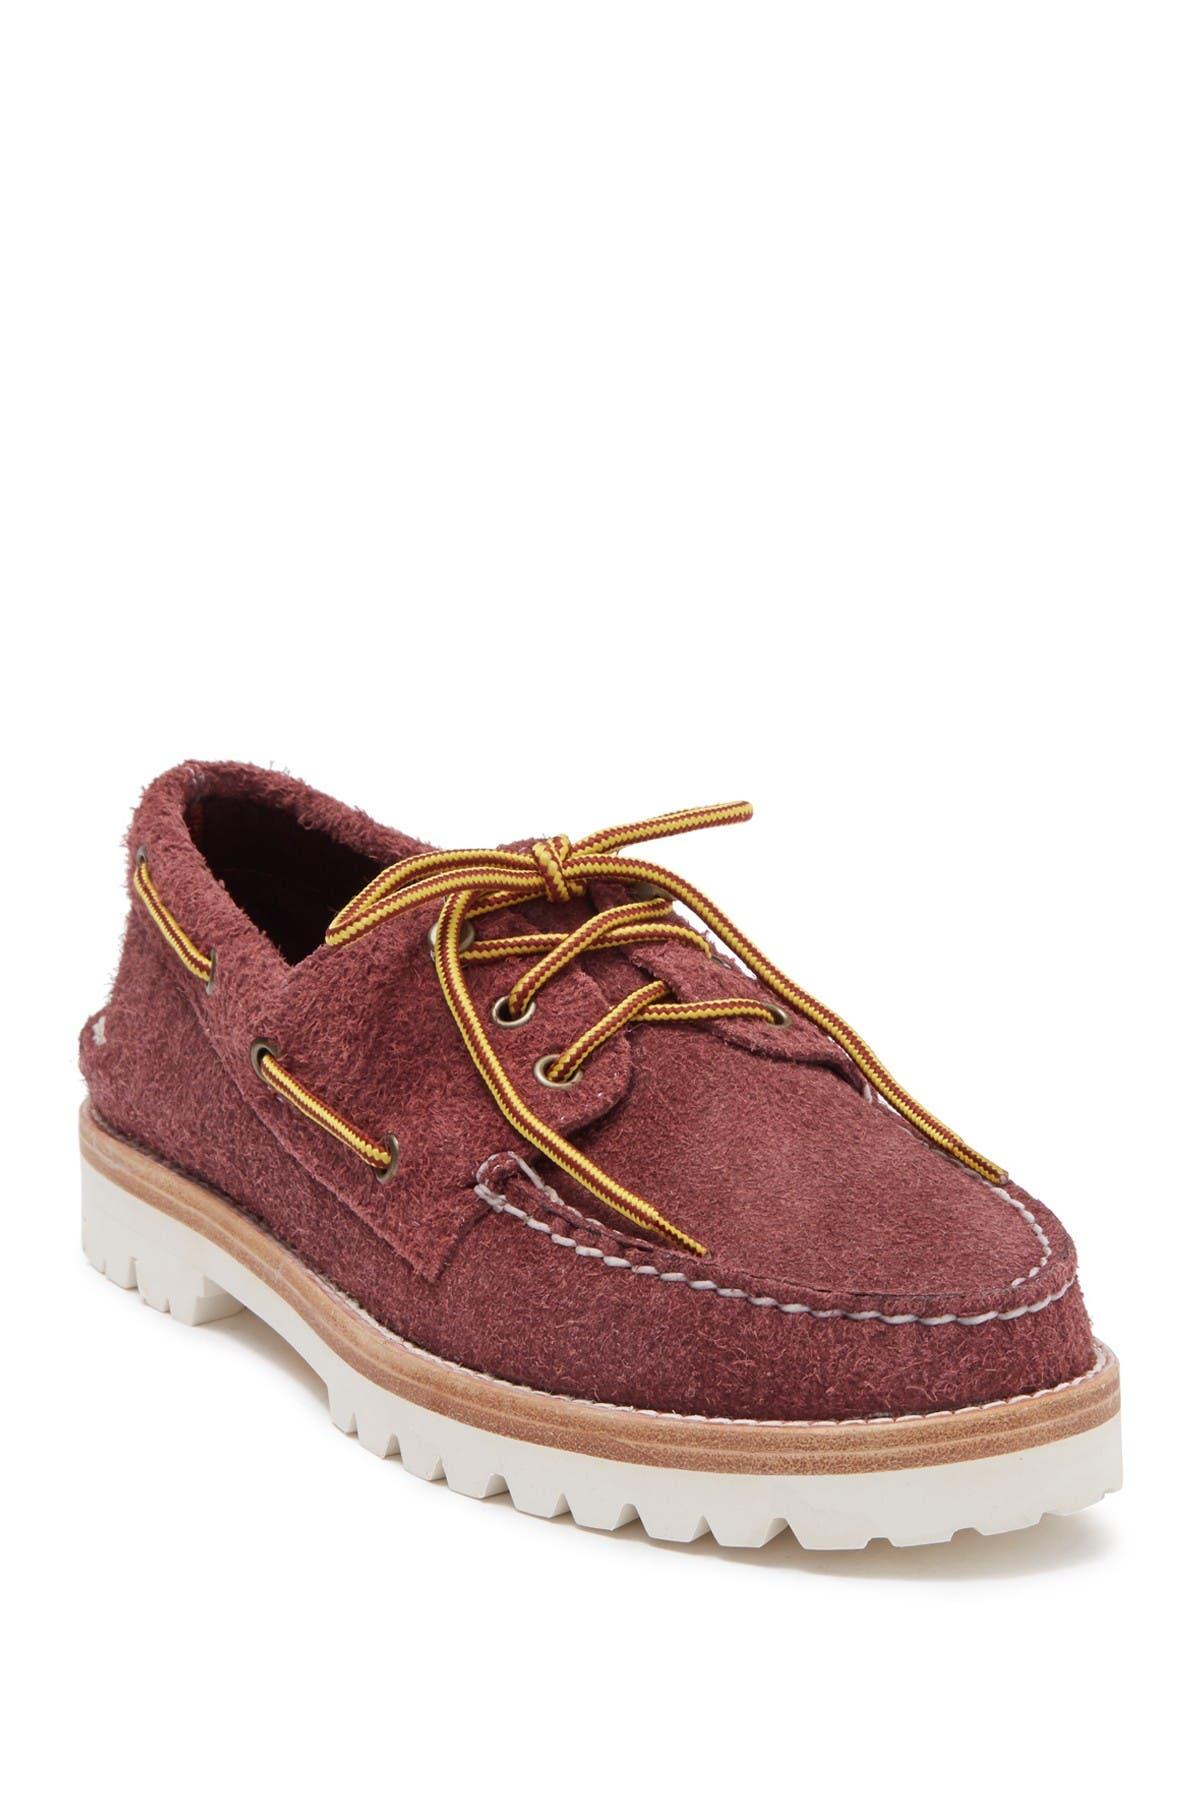 Image of Sperry Authentic Original 3-Eye Waterproof Lug Shoe